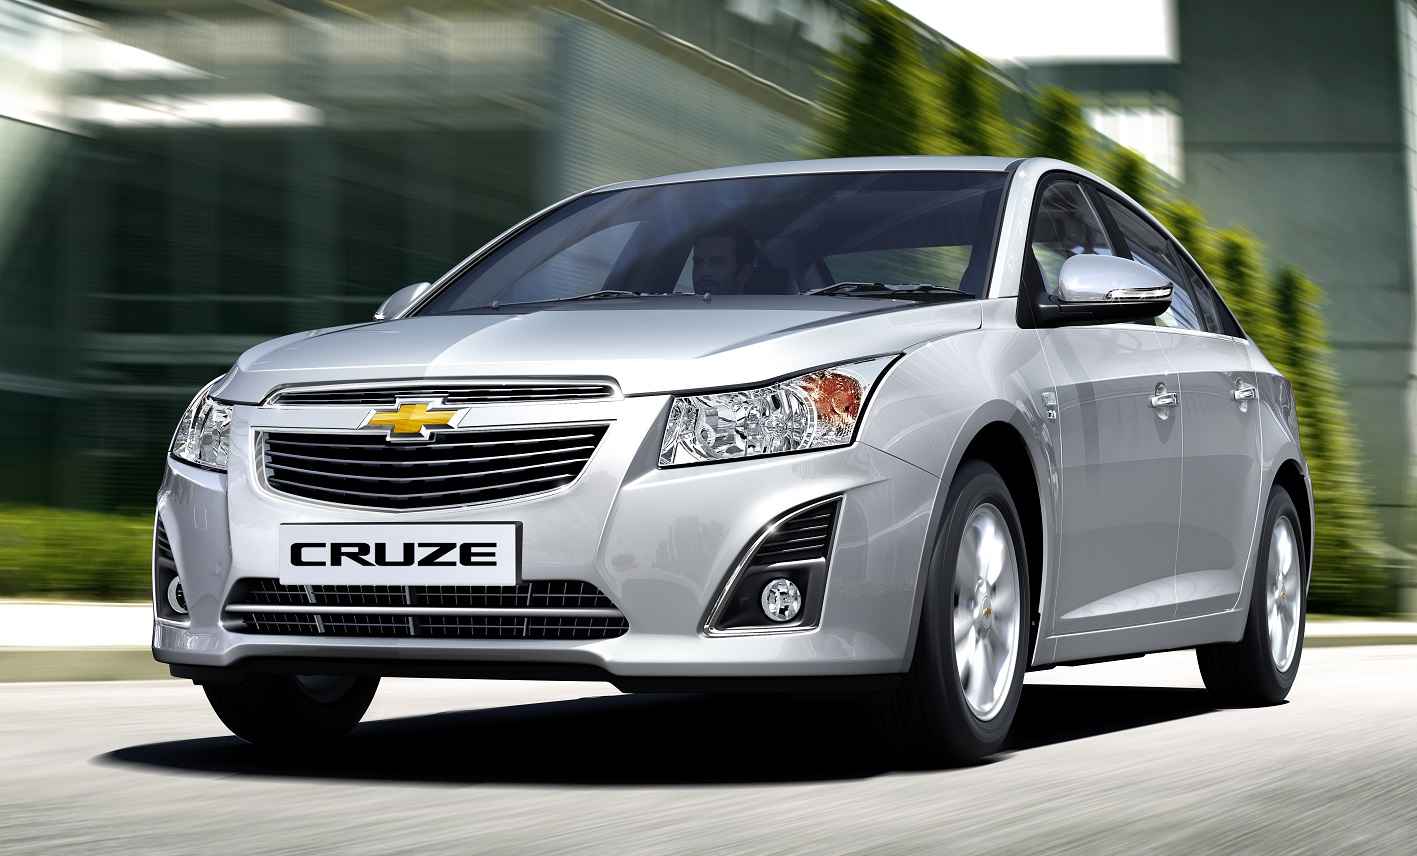 chevy cruze 2014 silver images galleries with a bite. Black Bedroom Furniture Sets. Home Design Ideas